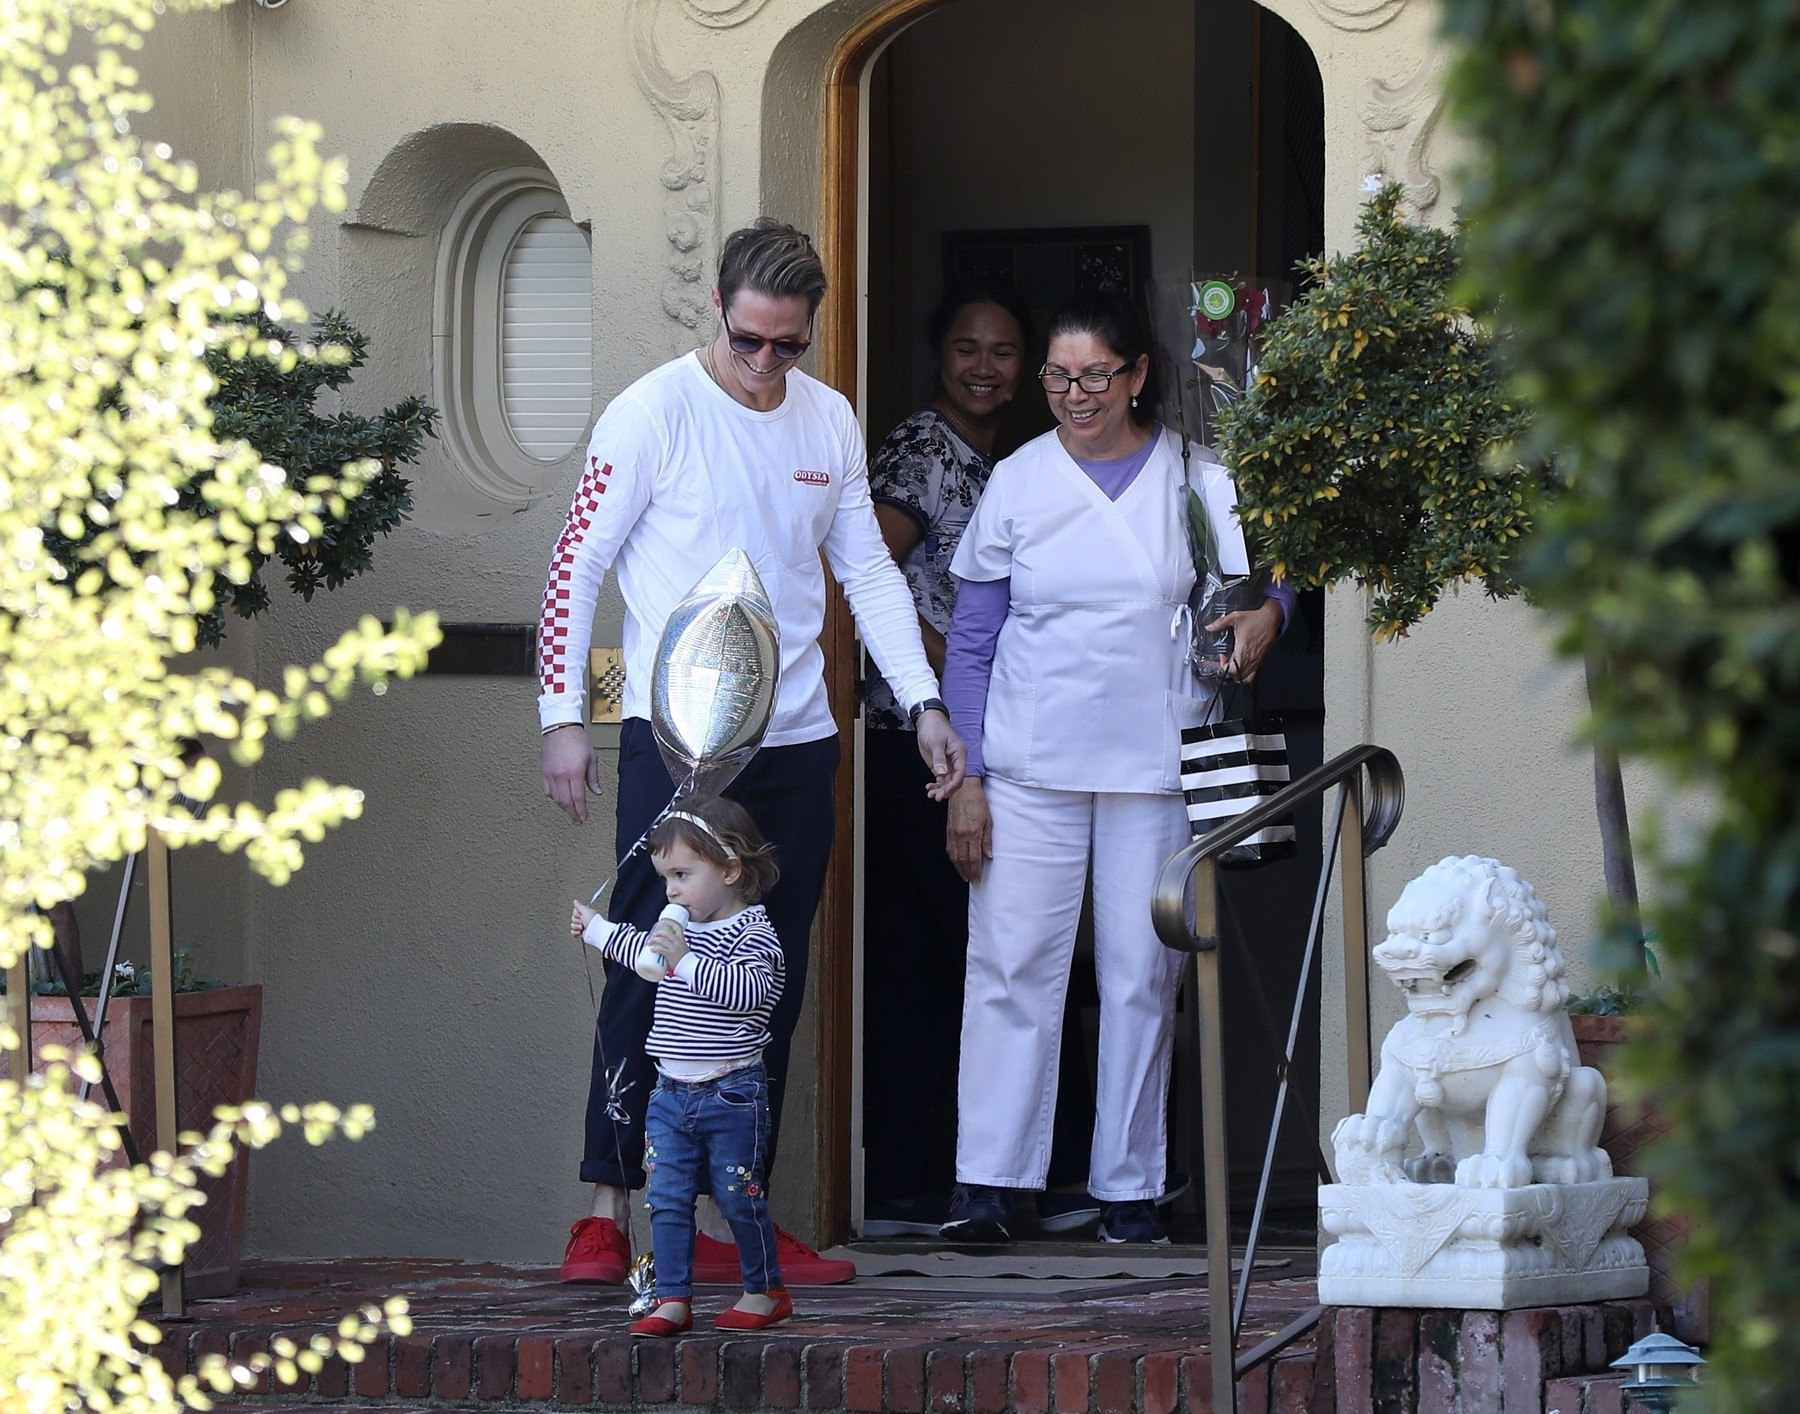 Los Angeles, CA  - Kirk Douglas grandson Cameron Douglas visits him on his 103rd birthday in Beverly Hills  BACKGRID USA 9 DECEMBER 2019, Image: 487222854, License: Rights-managed, Restrictions: , Model Release: no, Credit line: Clint Brewer / BACKGRID / Backgrid USA / Profimedia